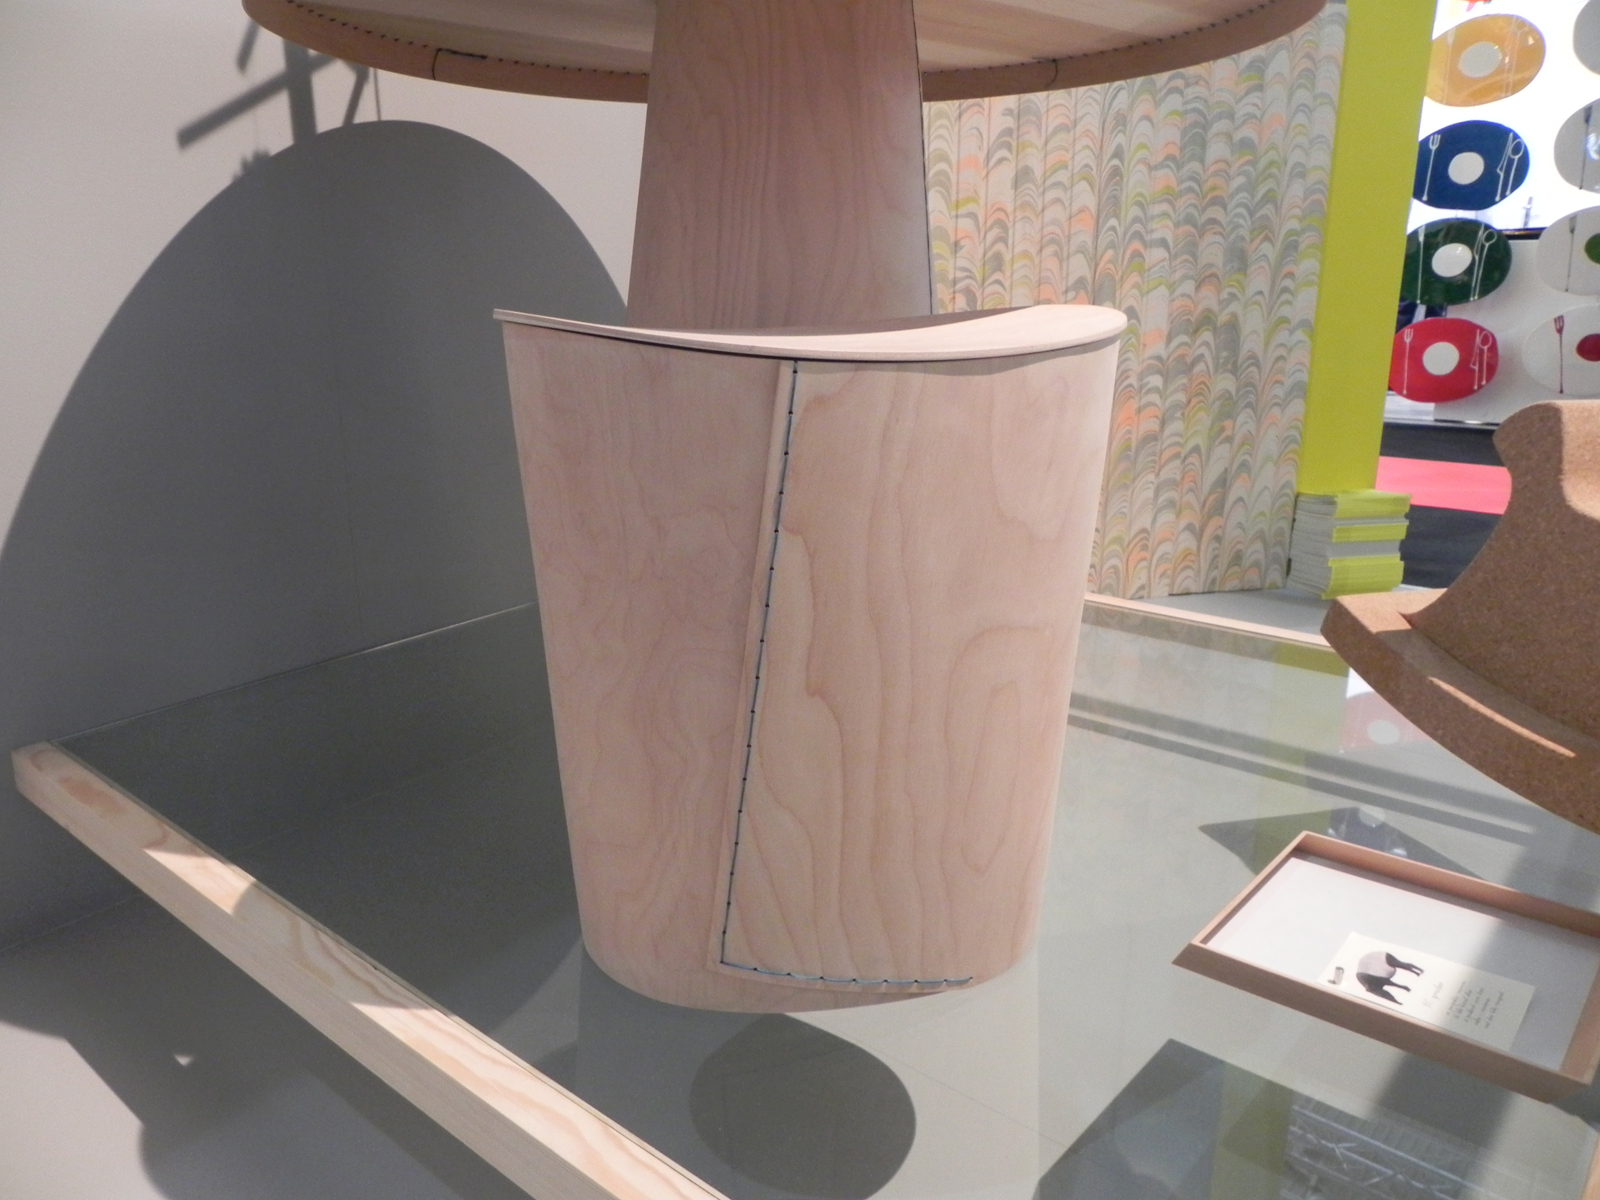 Wooden stool and circular table by Akiko Kuwahata